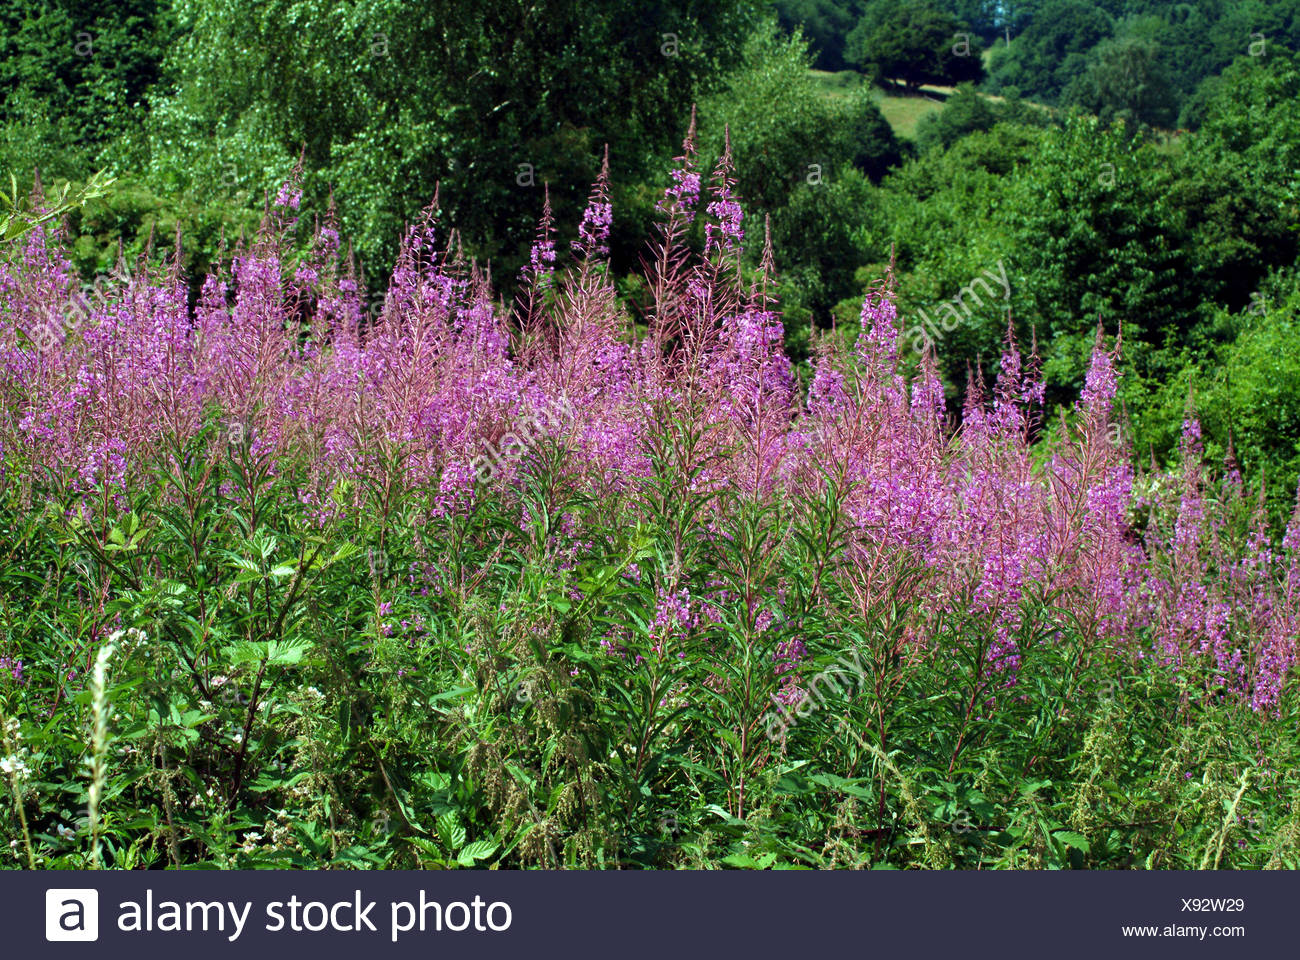 Fireweed, blooming sally, Rosebay willow-herb, Great willow-herb (Epilobium angustifolium, Chamerion angustifolium), blooming, Germany Stock Photo